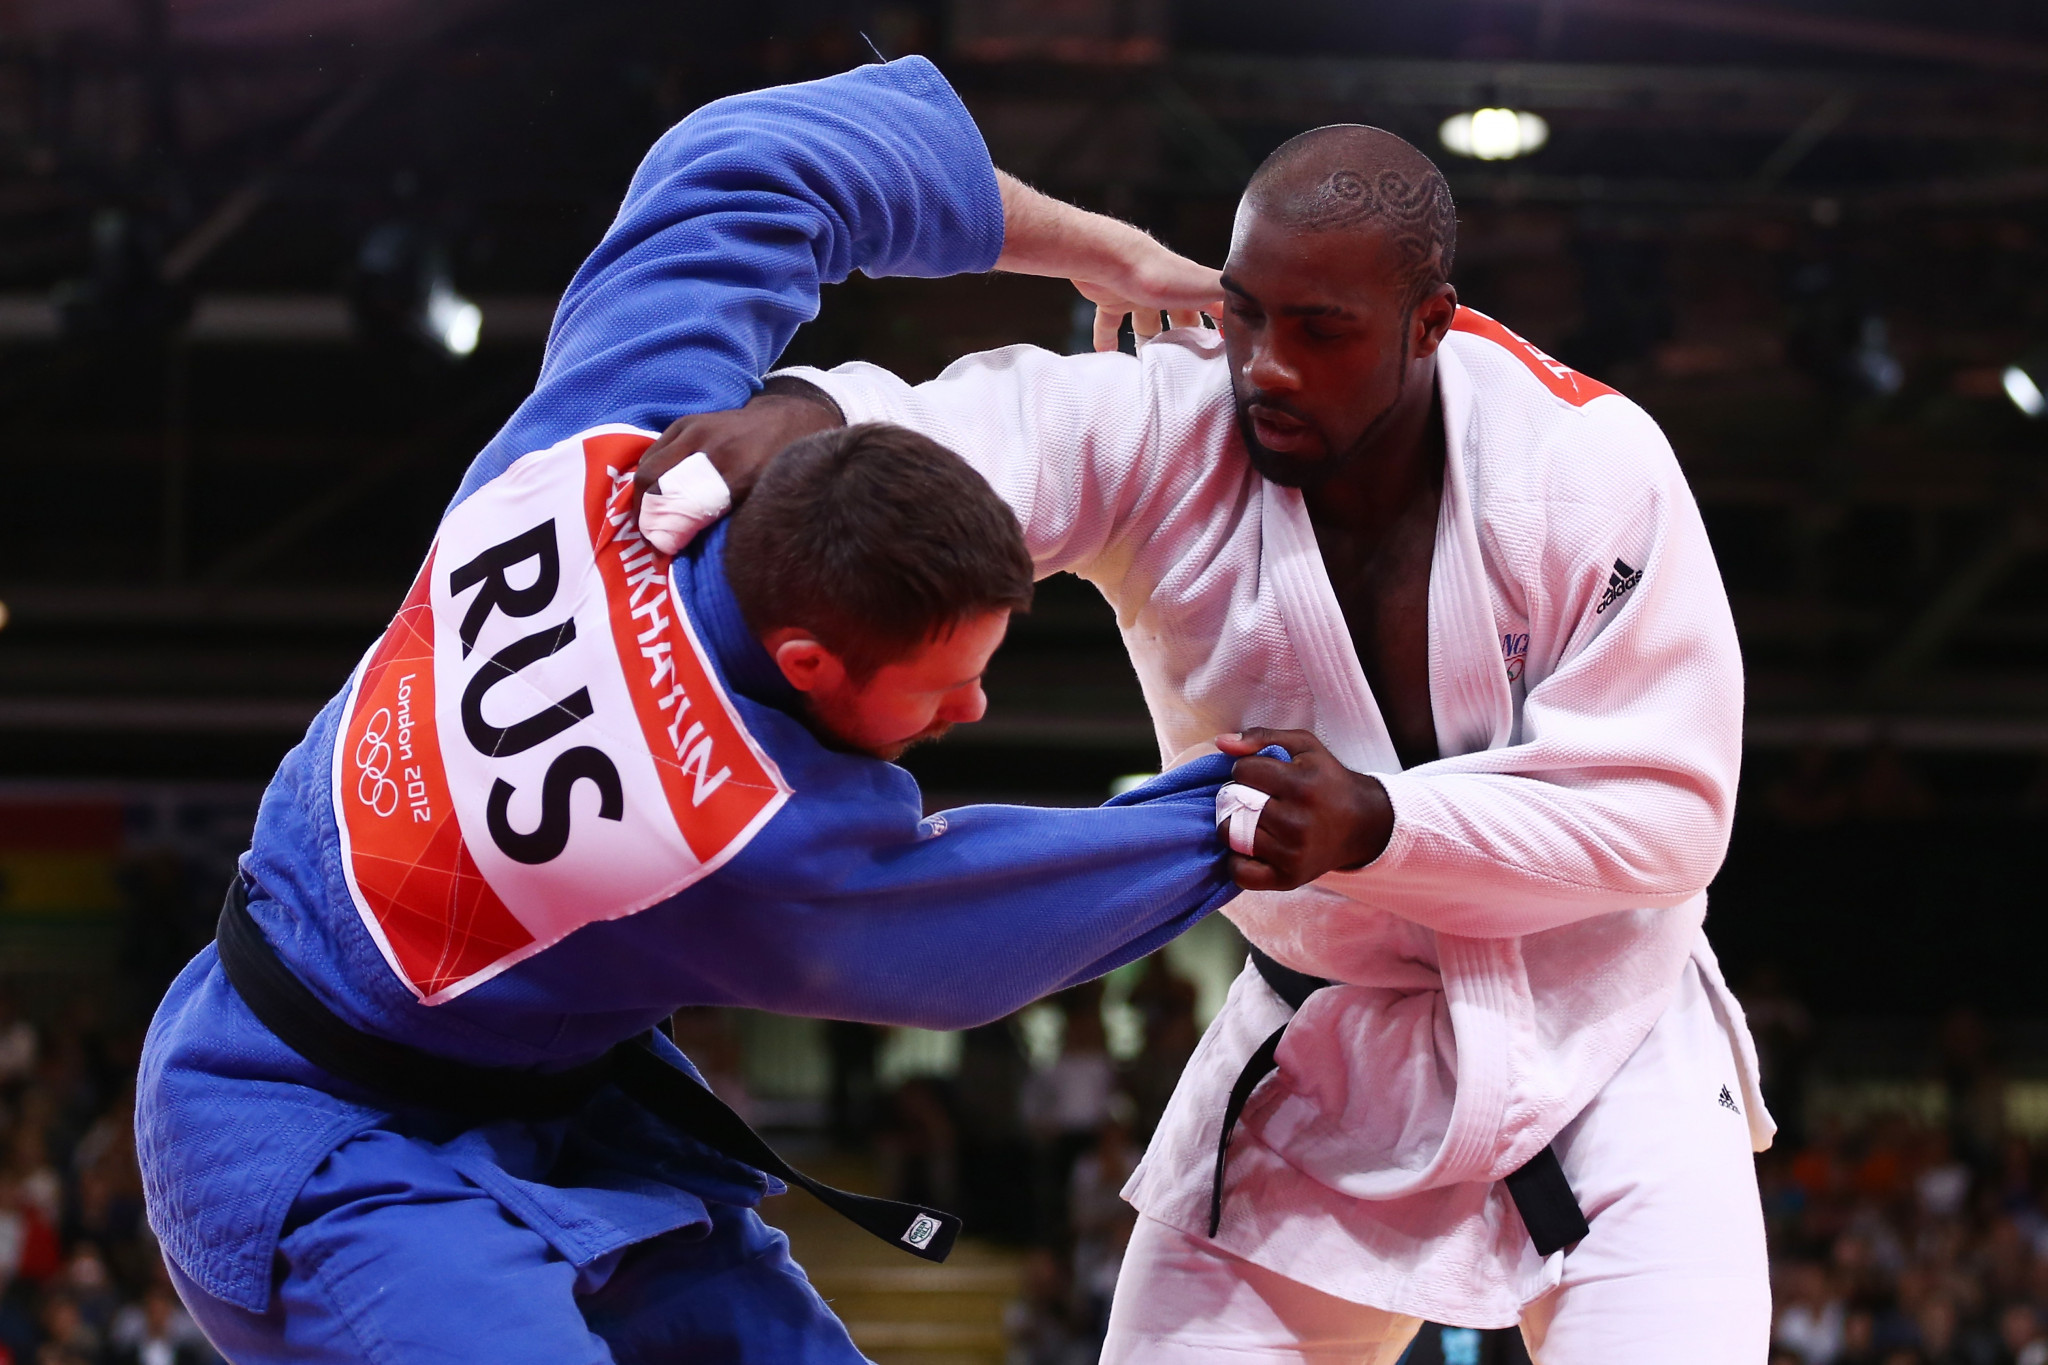 Teddy Riner of France (white) and Alexander Mikhaylin of Russia compete in the Men's +100 kg Judo on Day 7 of the London 2012 Olympic Games ©Getty Images